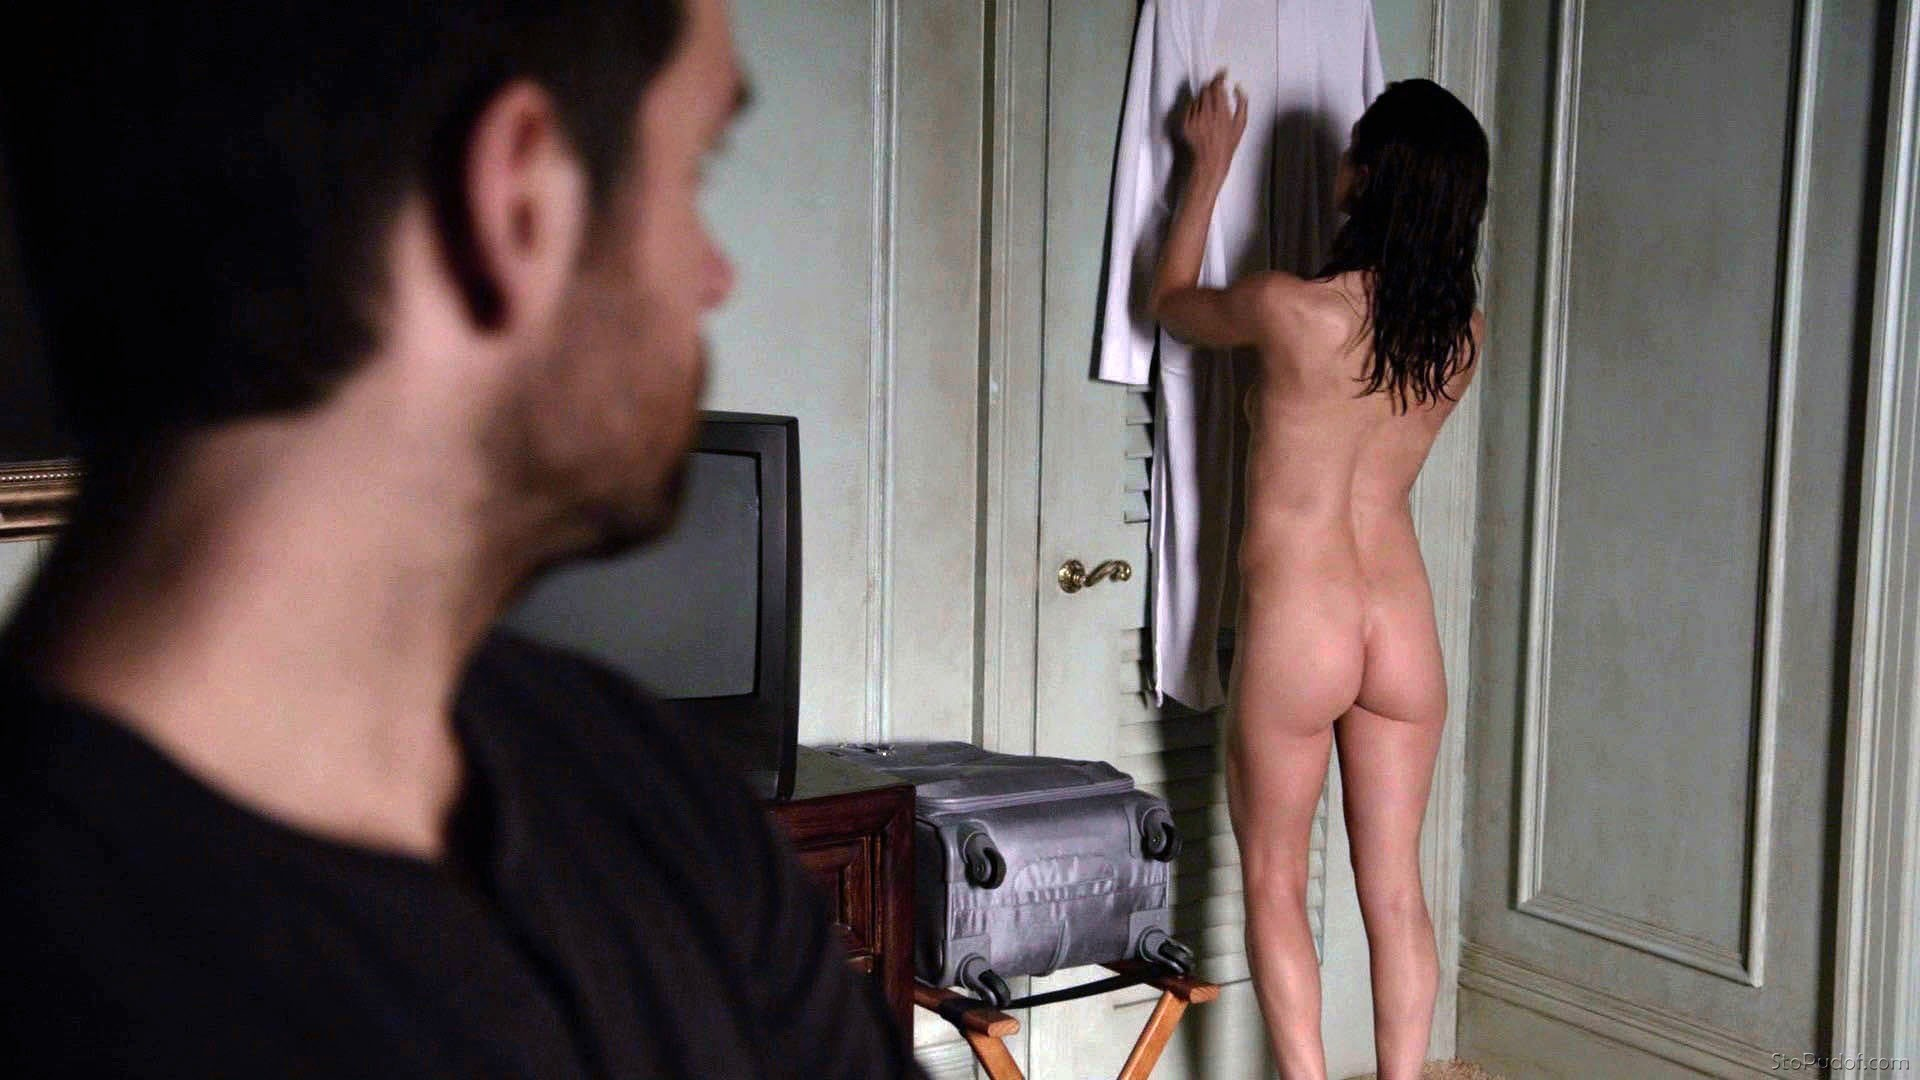 Eliza Dushku nude video uncensored - UkPhotoSafari